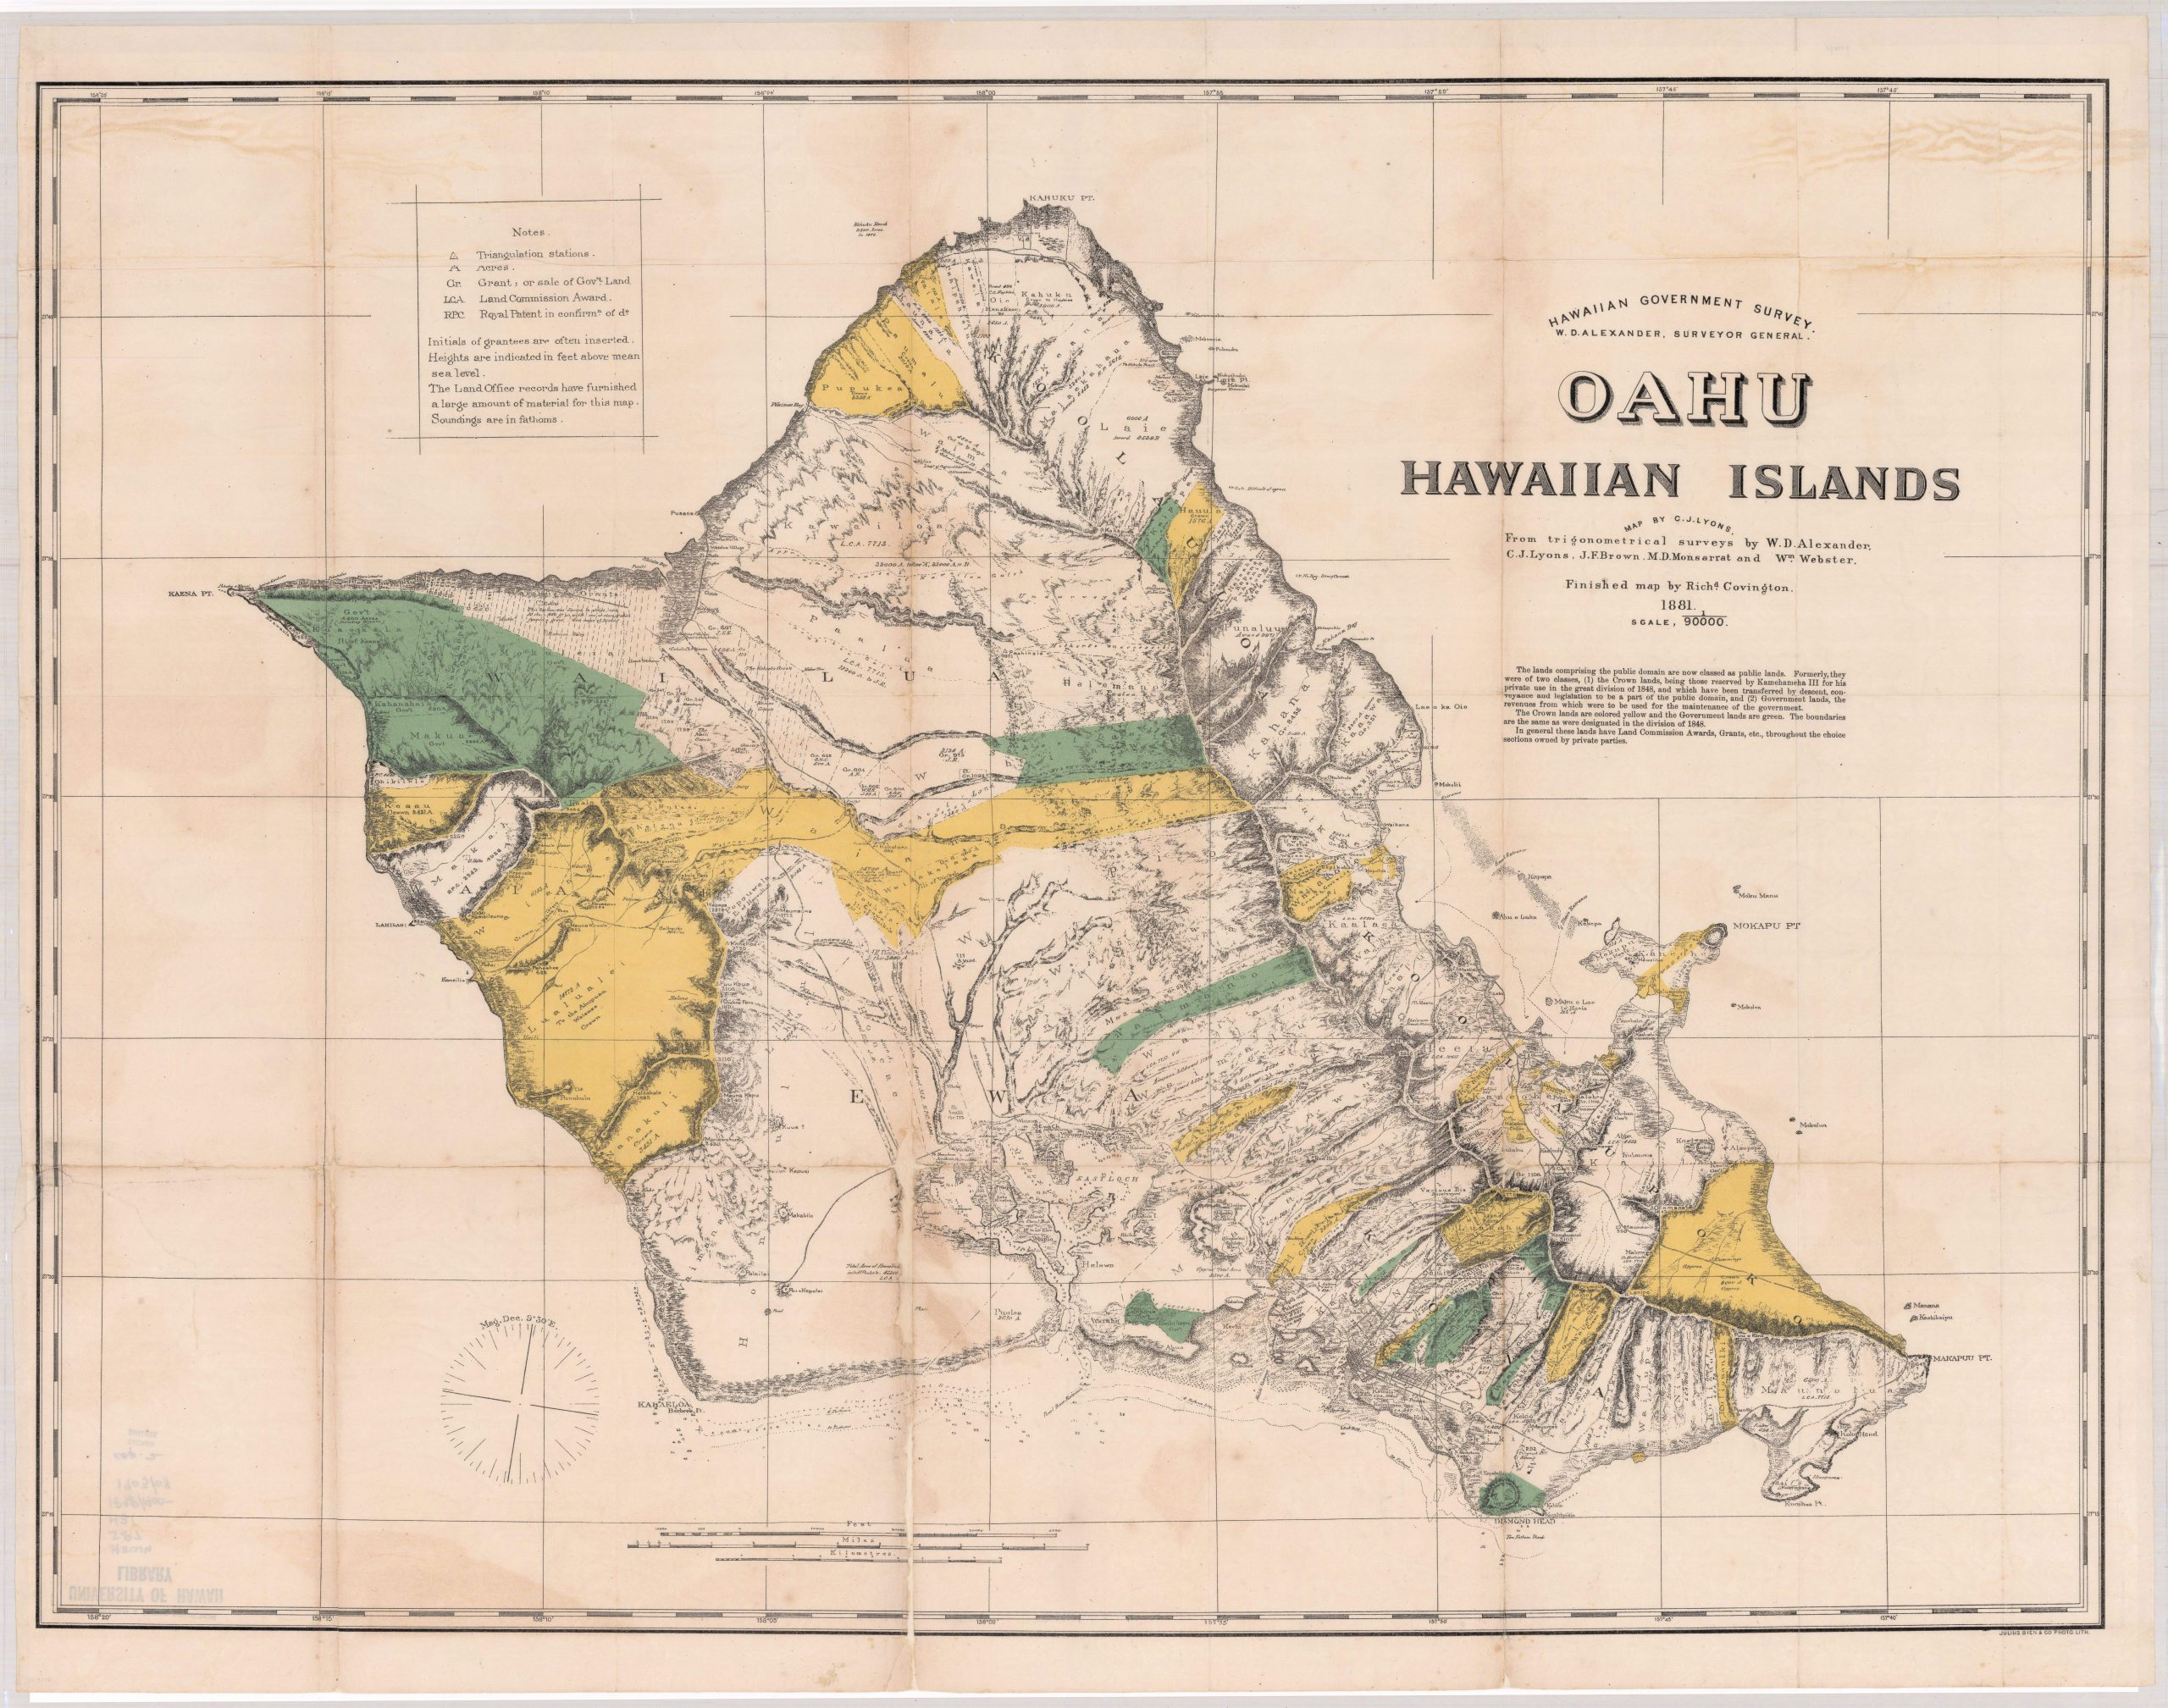 A map of O'ahu from 1881 showing the distinction between crown lands and government lands